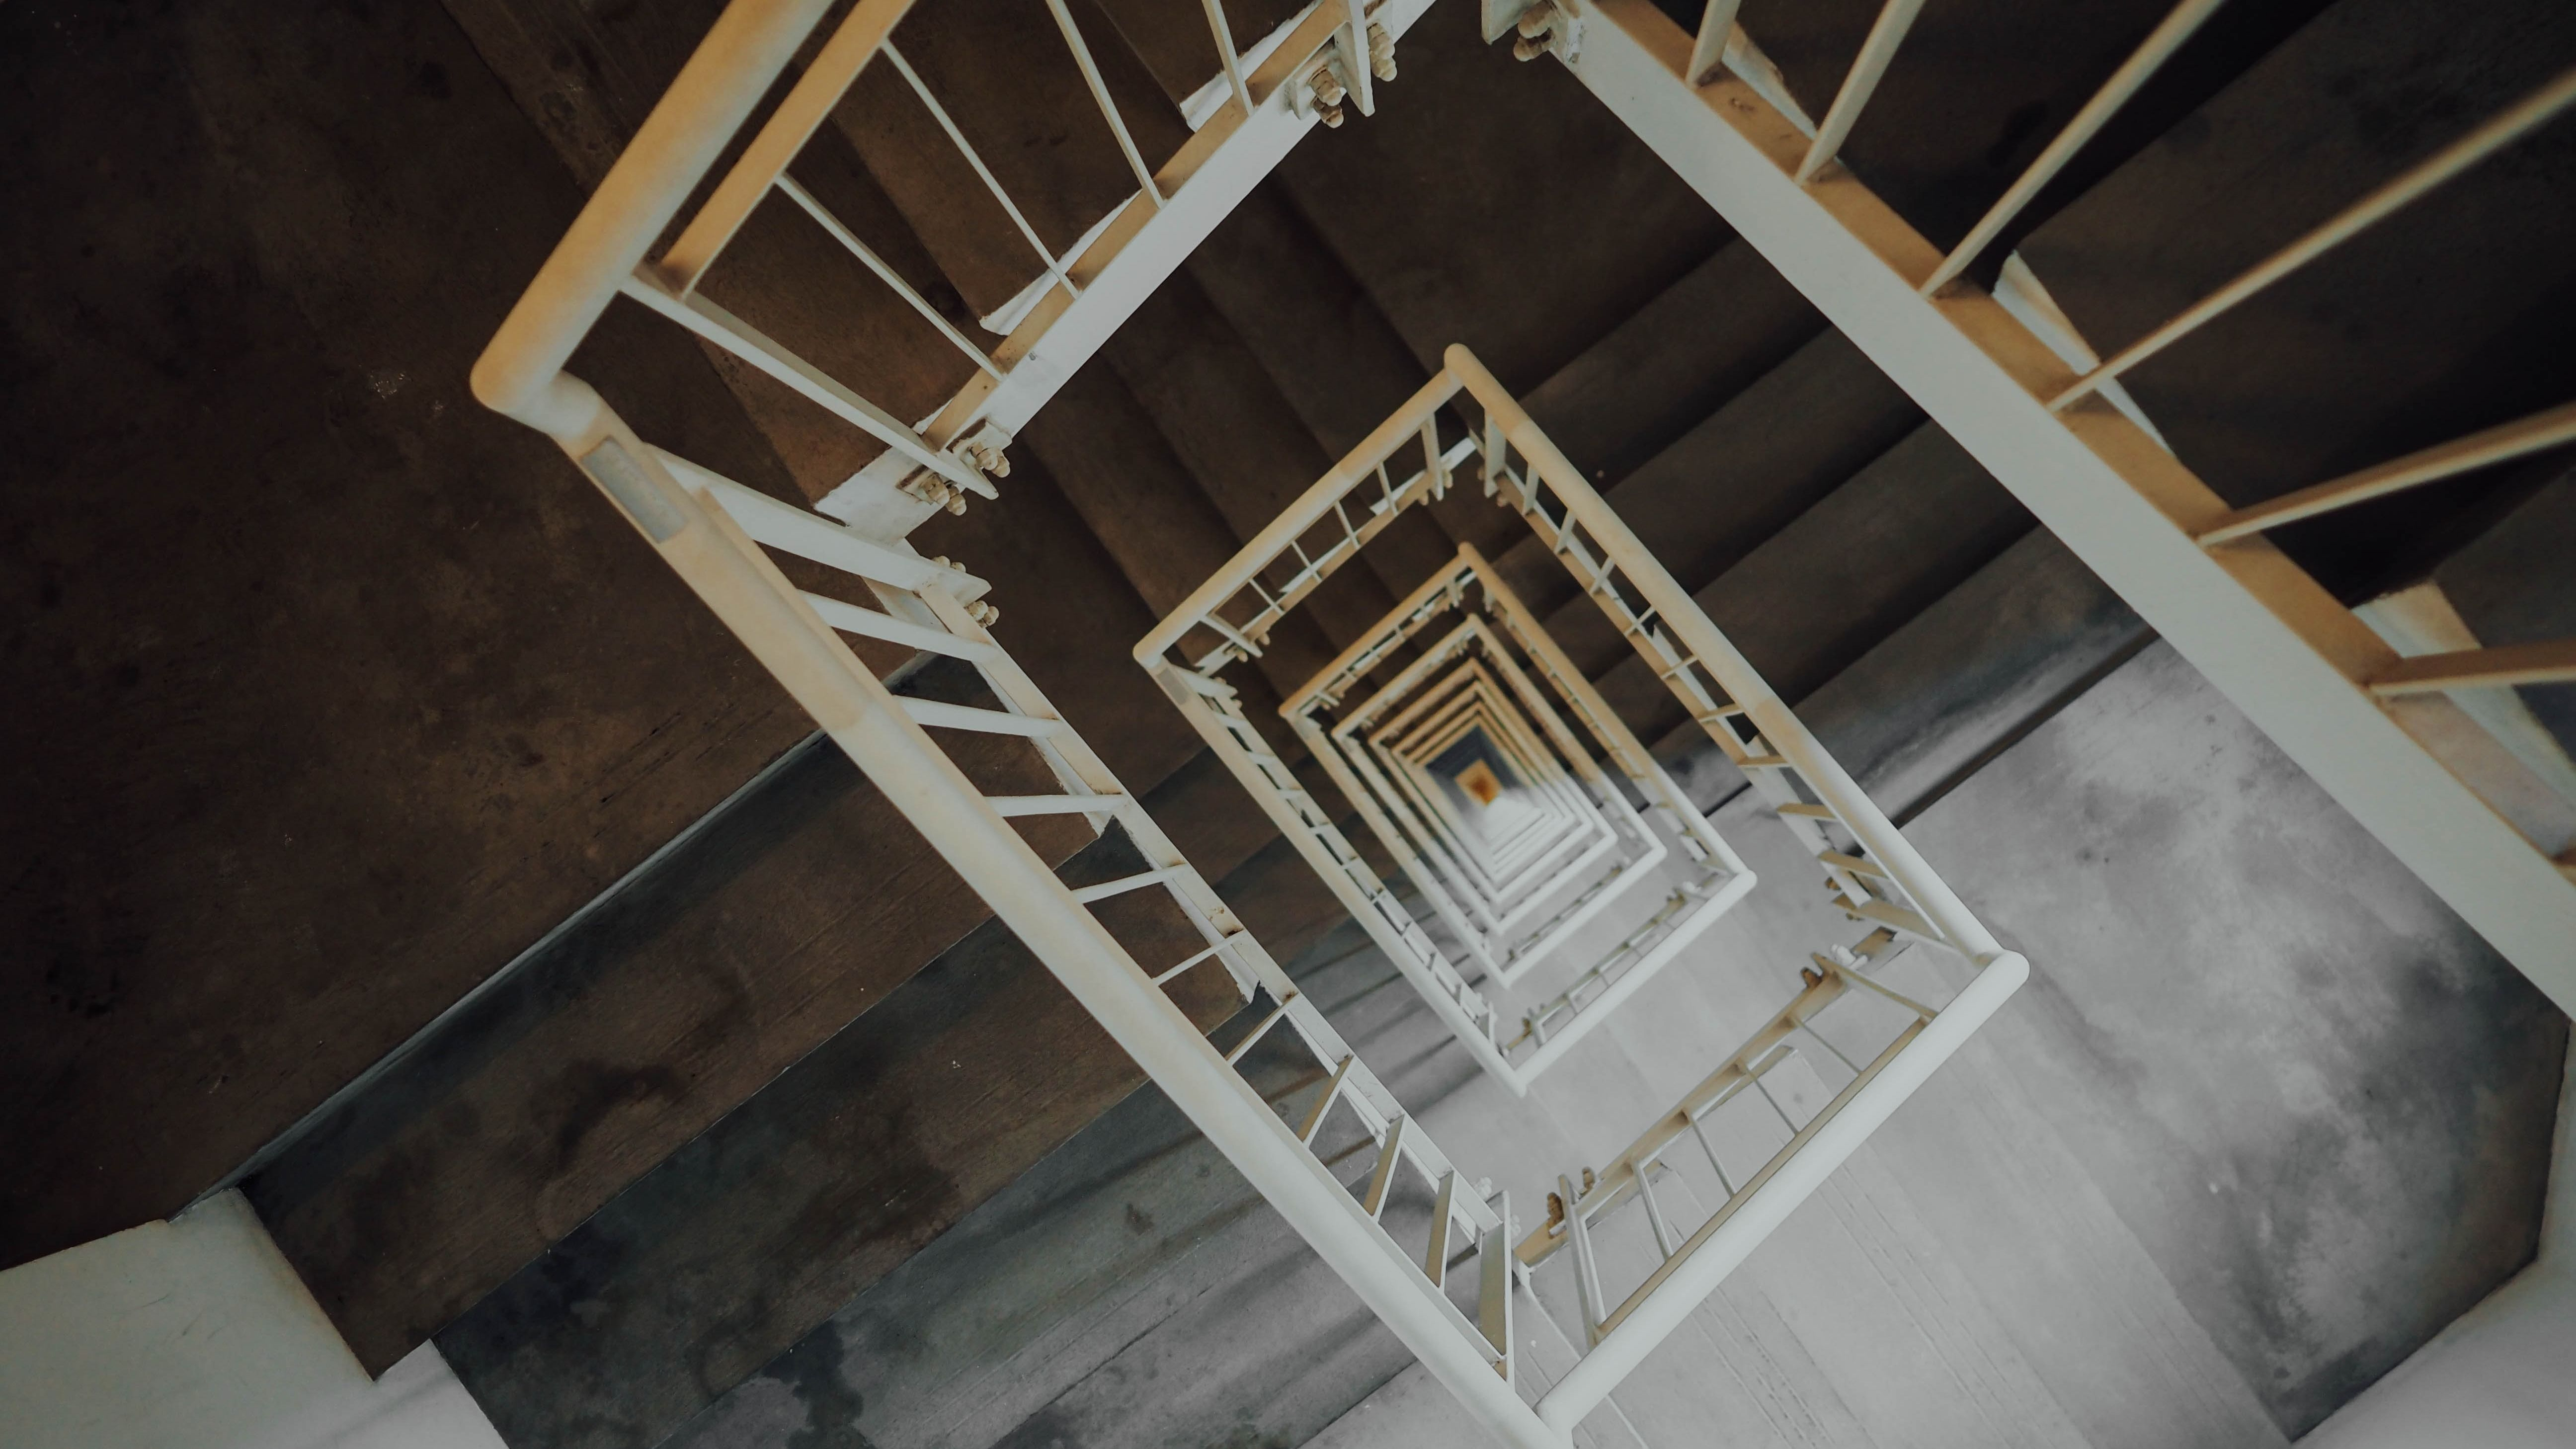 /are-you-missing-a-step-in-your-recursive-staircase-nmx35a2 feature image